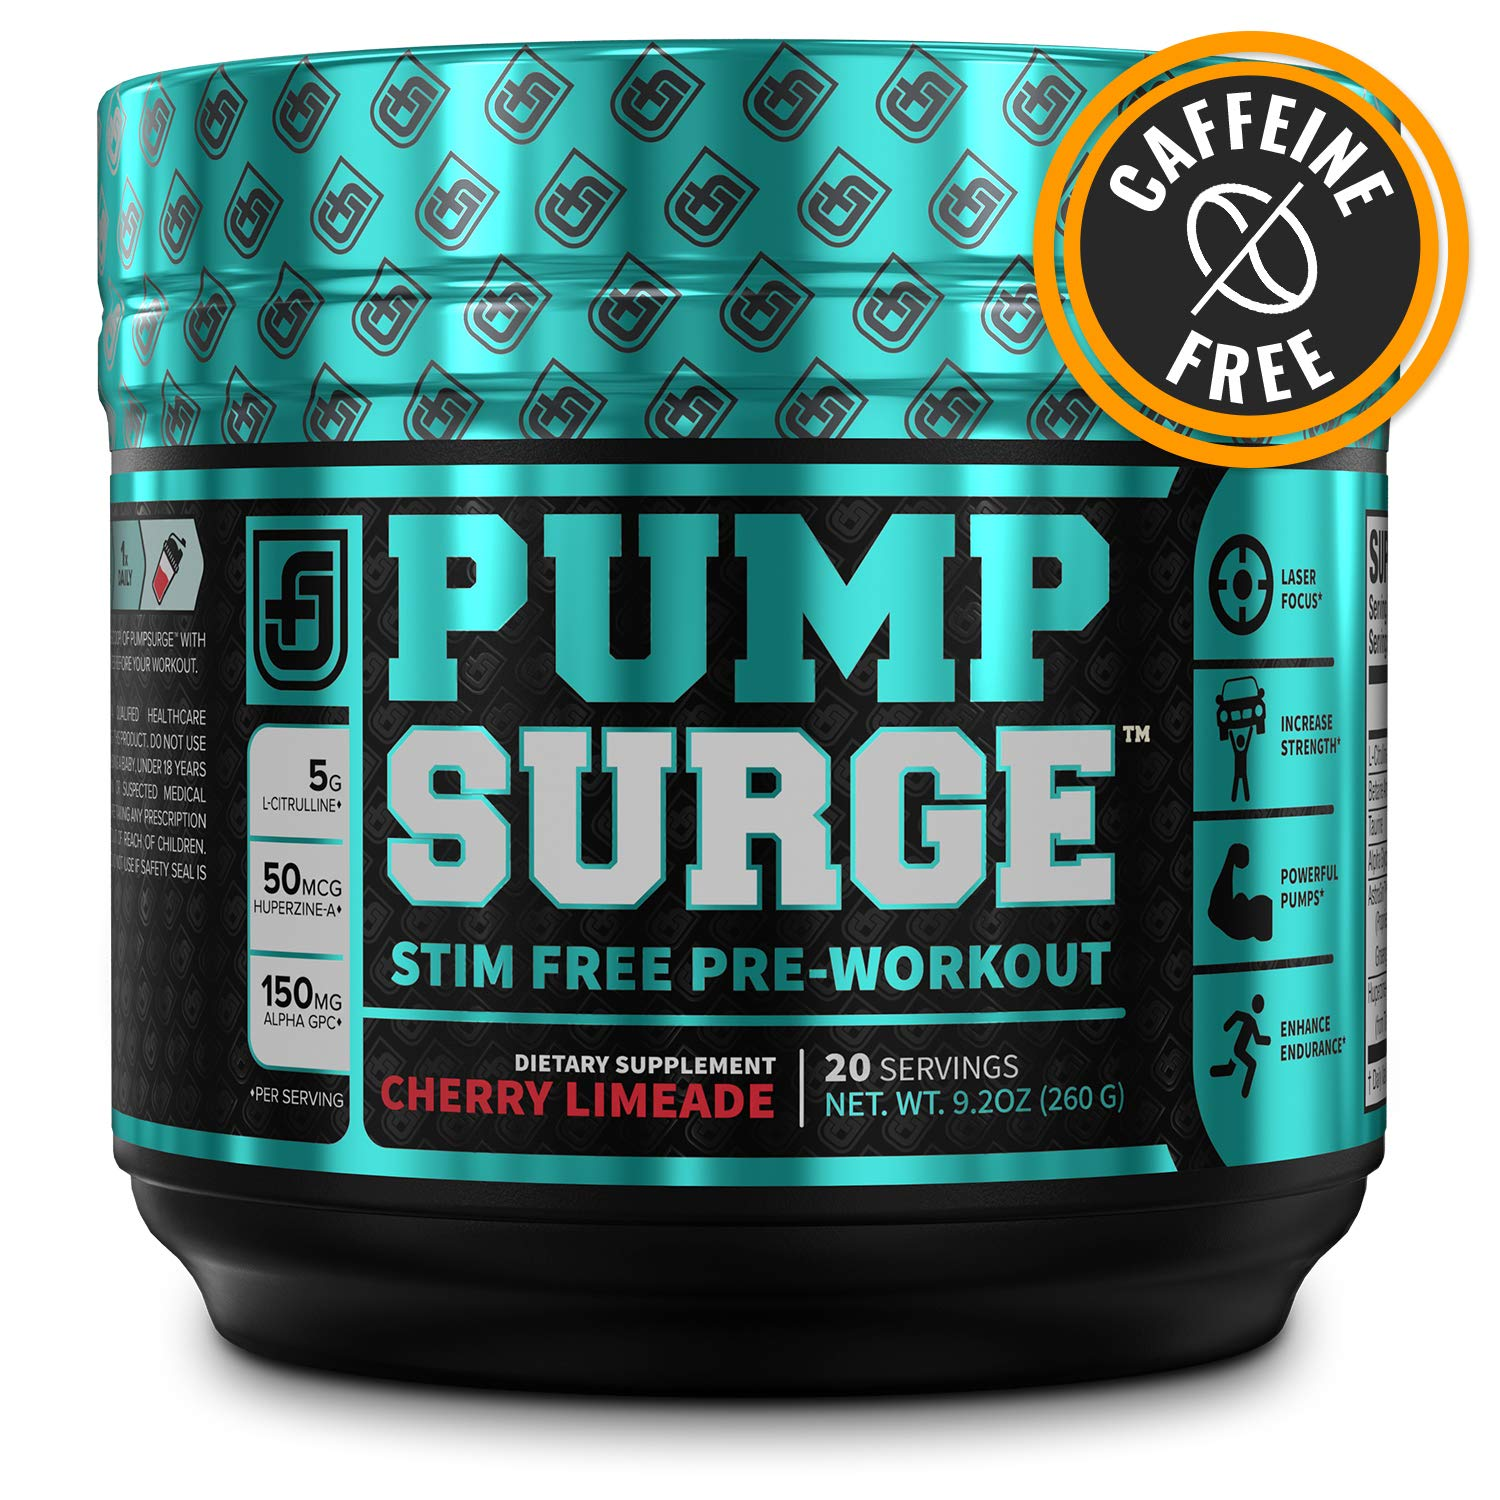 PUMPSURGE Caffeine-Free Pump Nootropic Pre Workout Supplement, Non Stimulant Preworkout Powder Nitric Oxide Booster,20 Servings, Cherry Limeade, 9.2 OZ